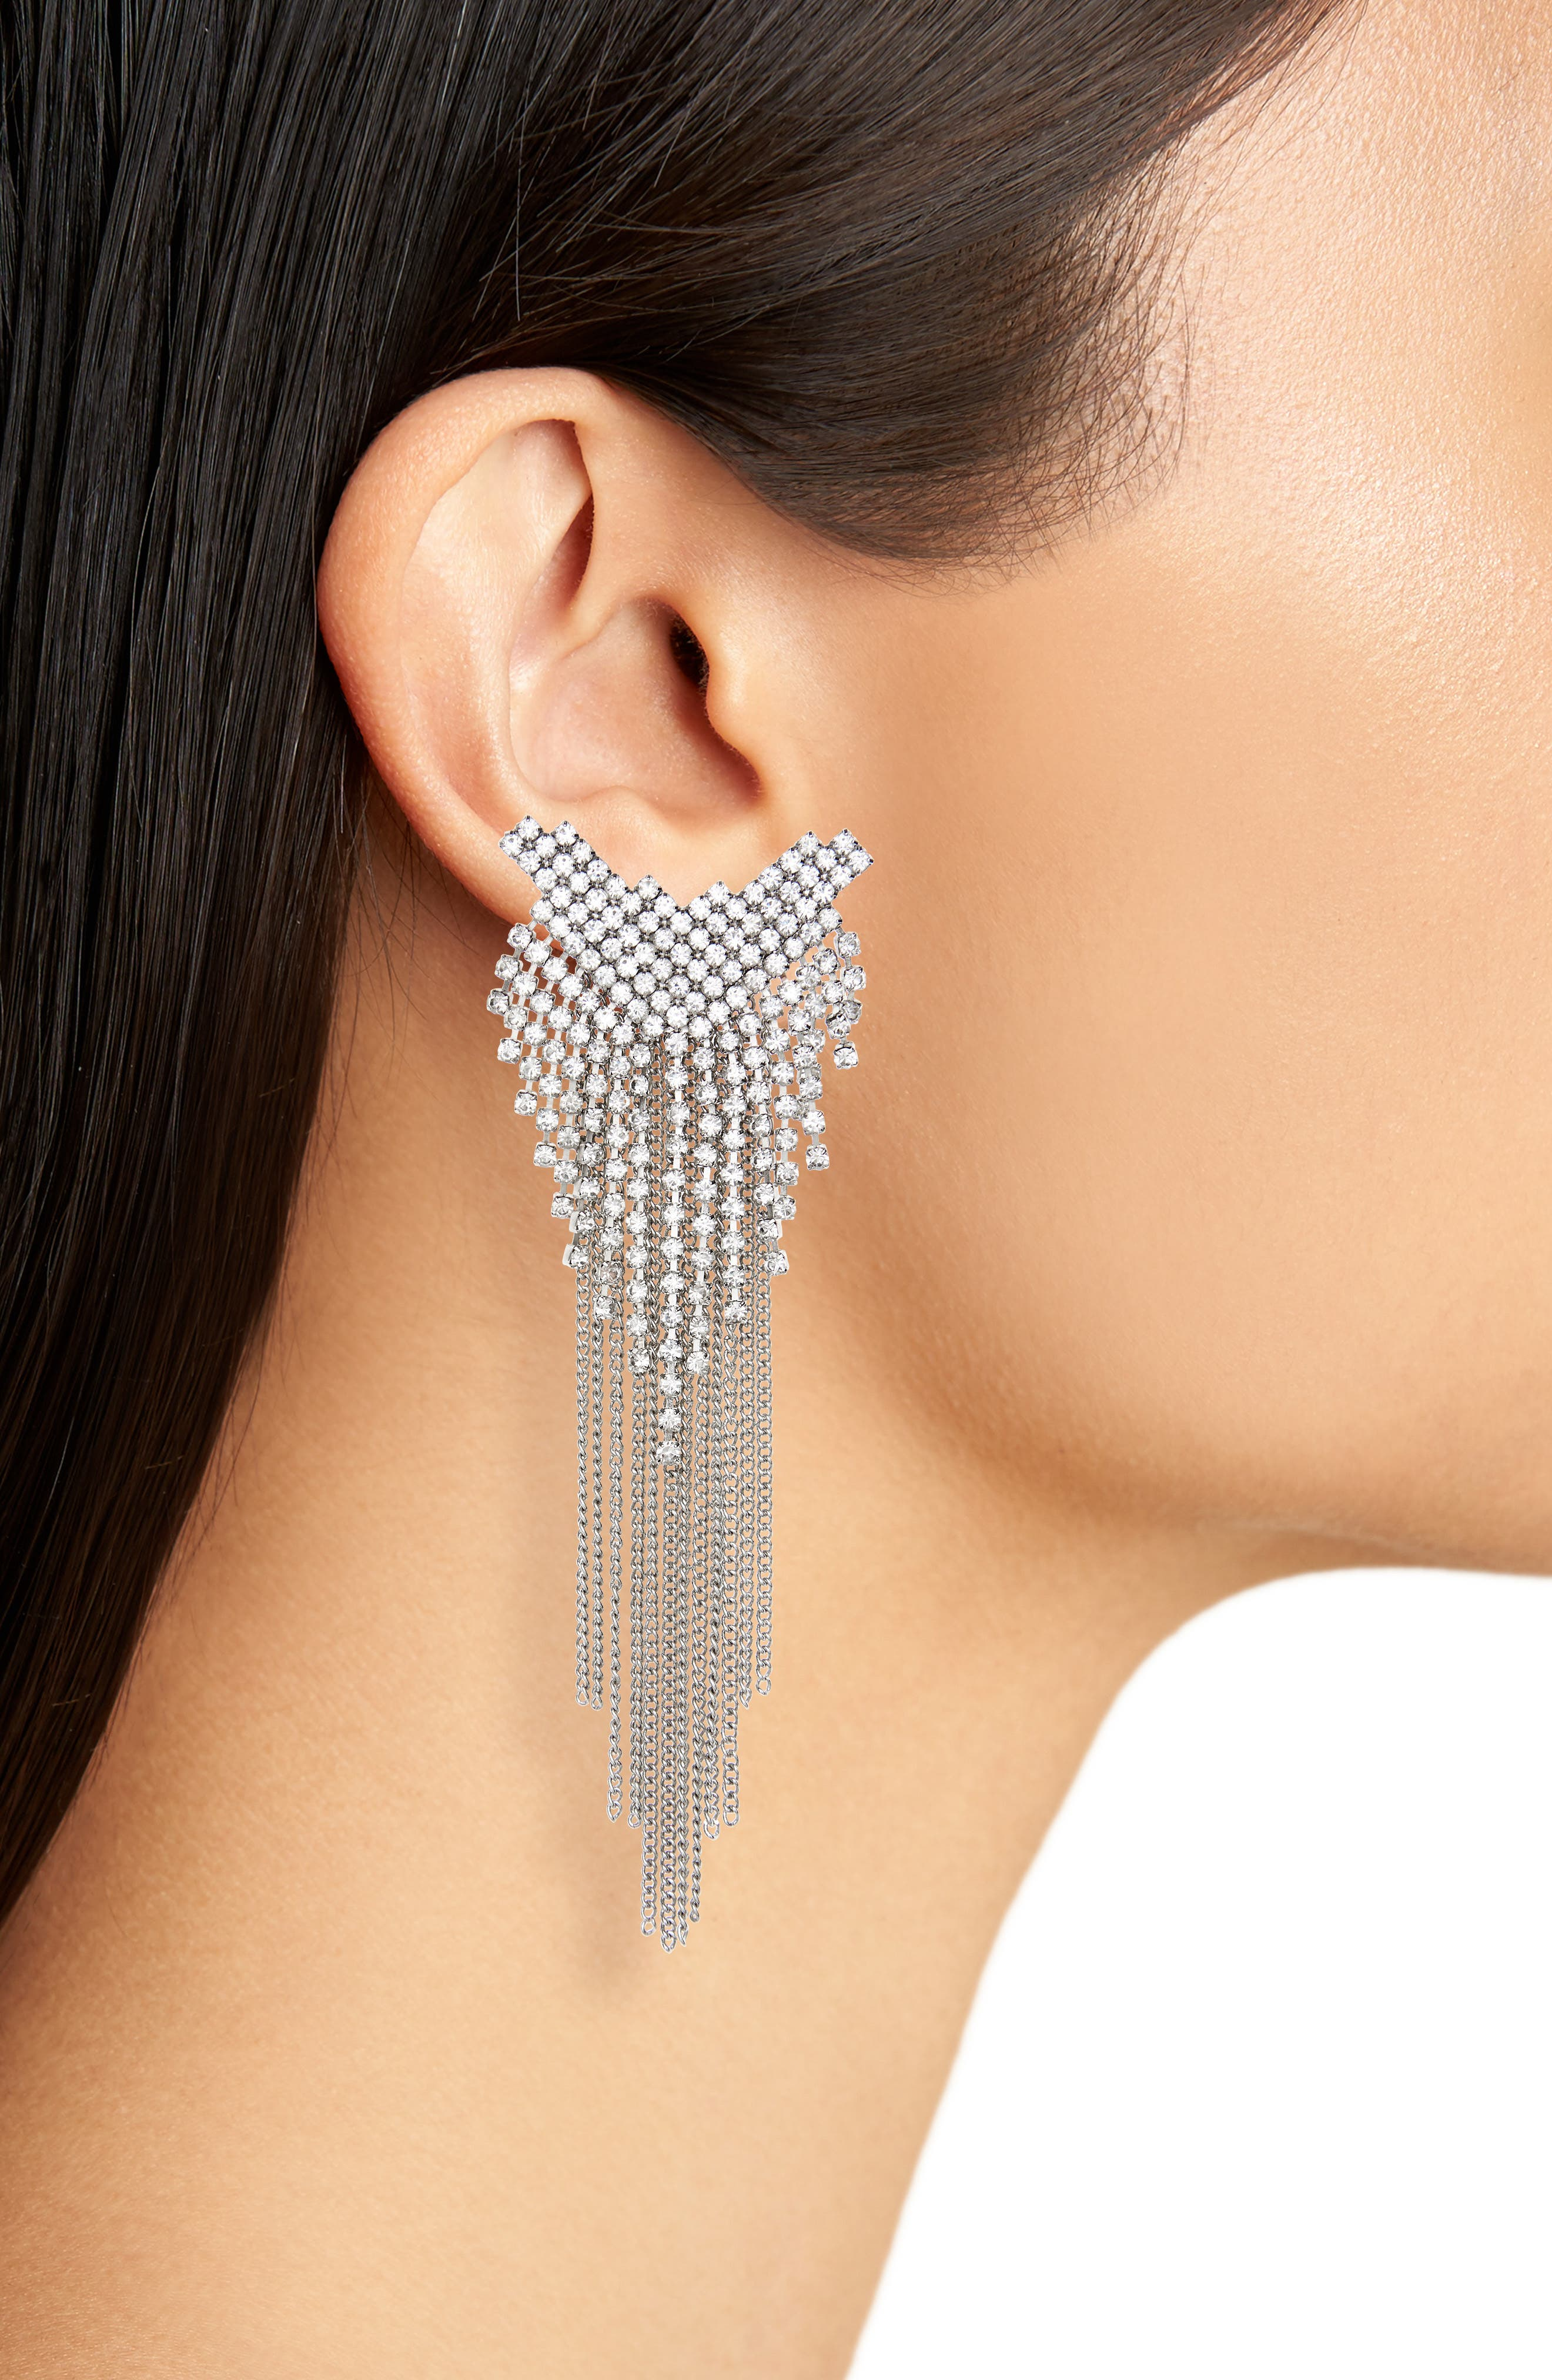 Crystal Fringe Earrings,                             Alternate thumbnail 2, color,                             SILVER/ CRYSTAL